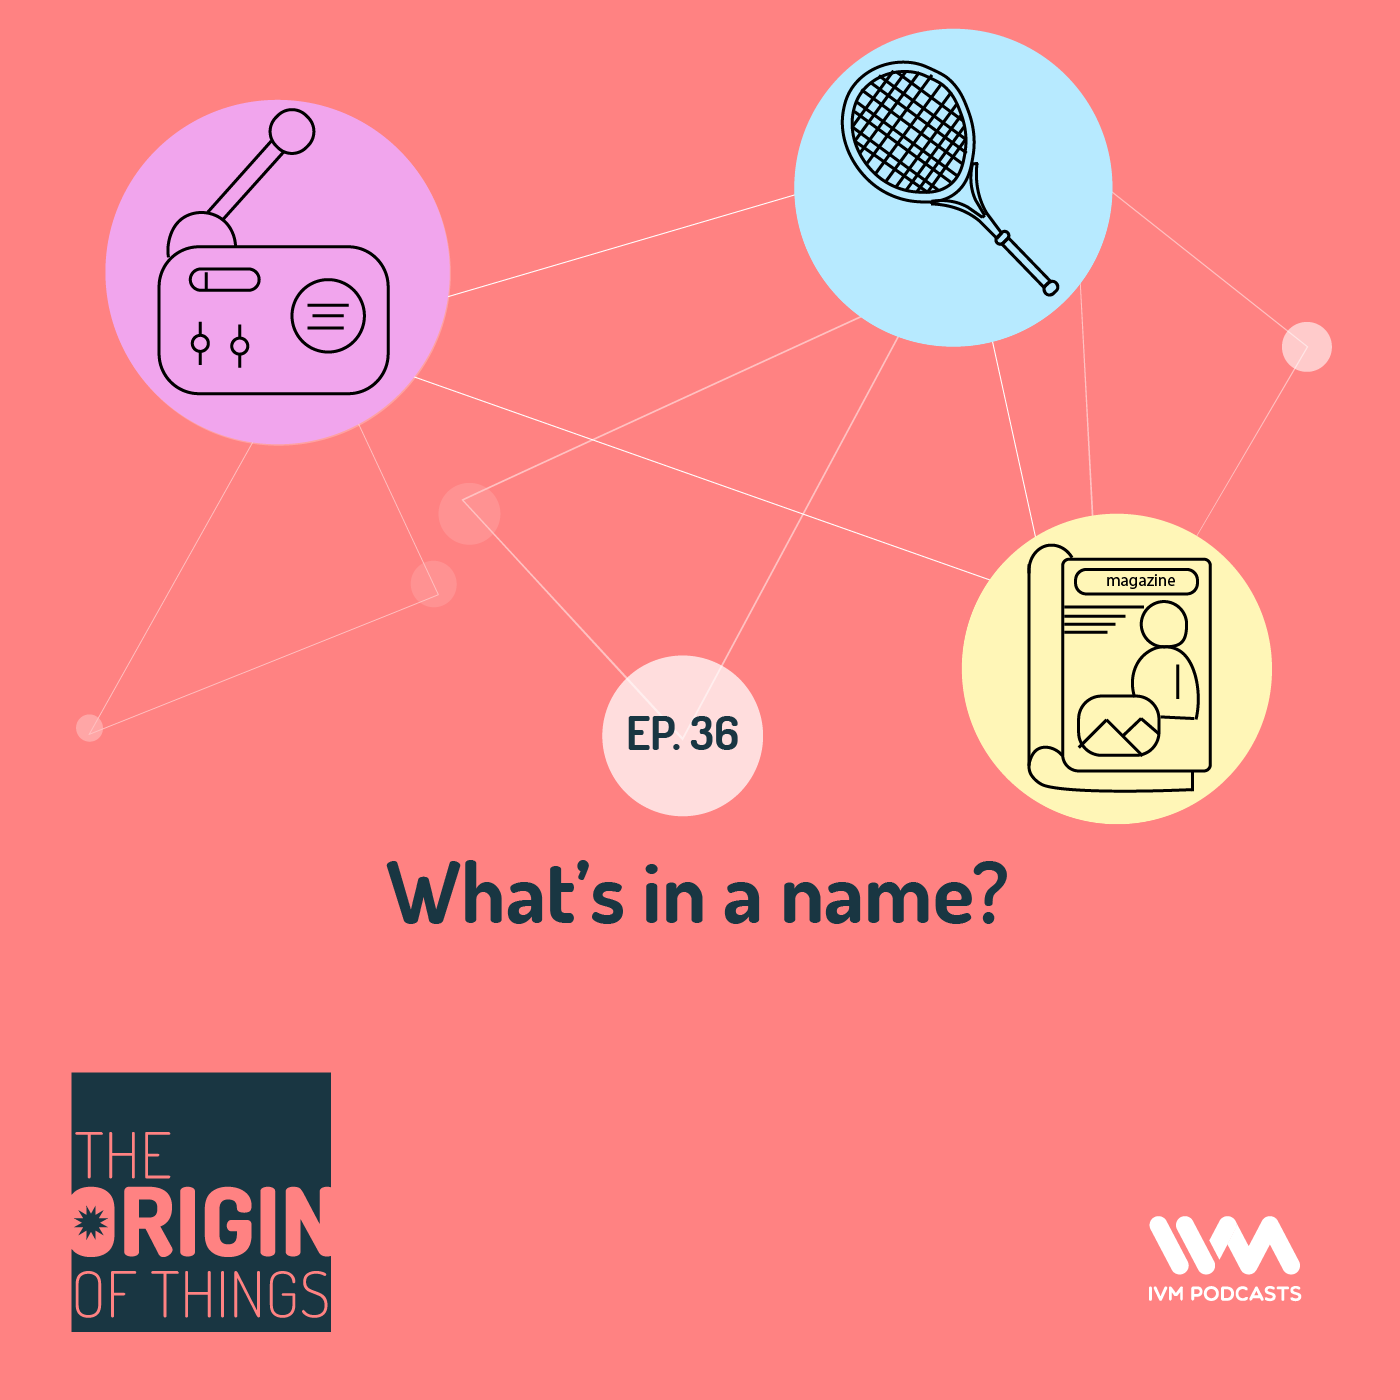 Ep. 36: What's in a name?